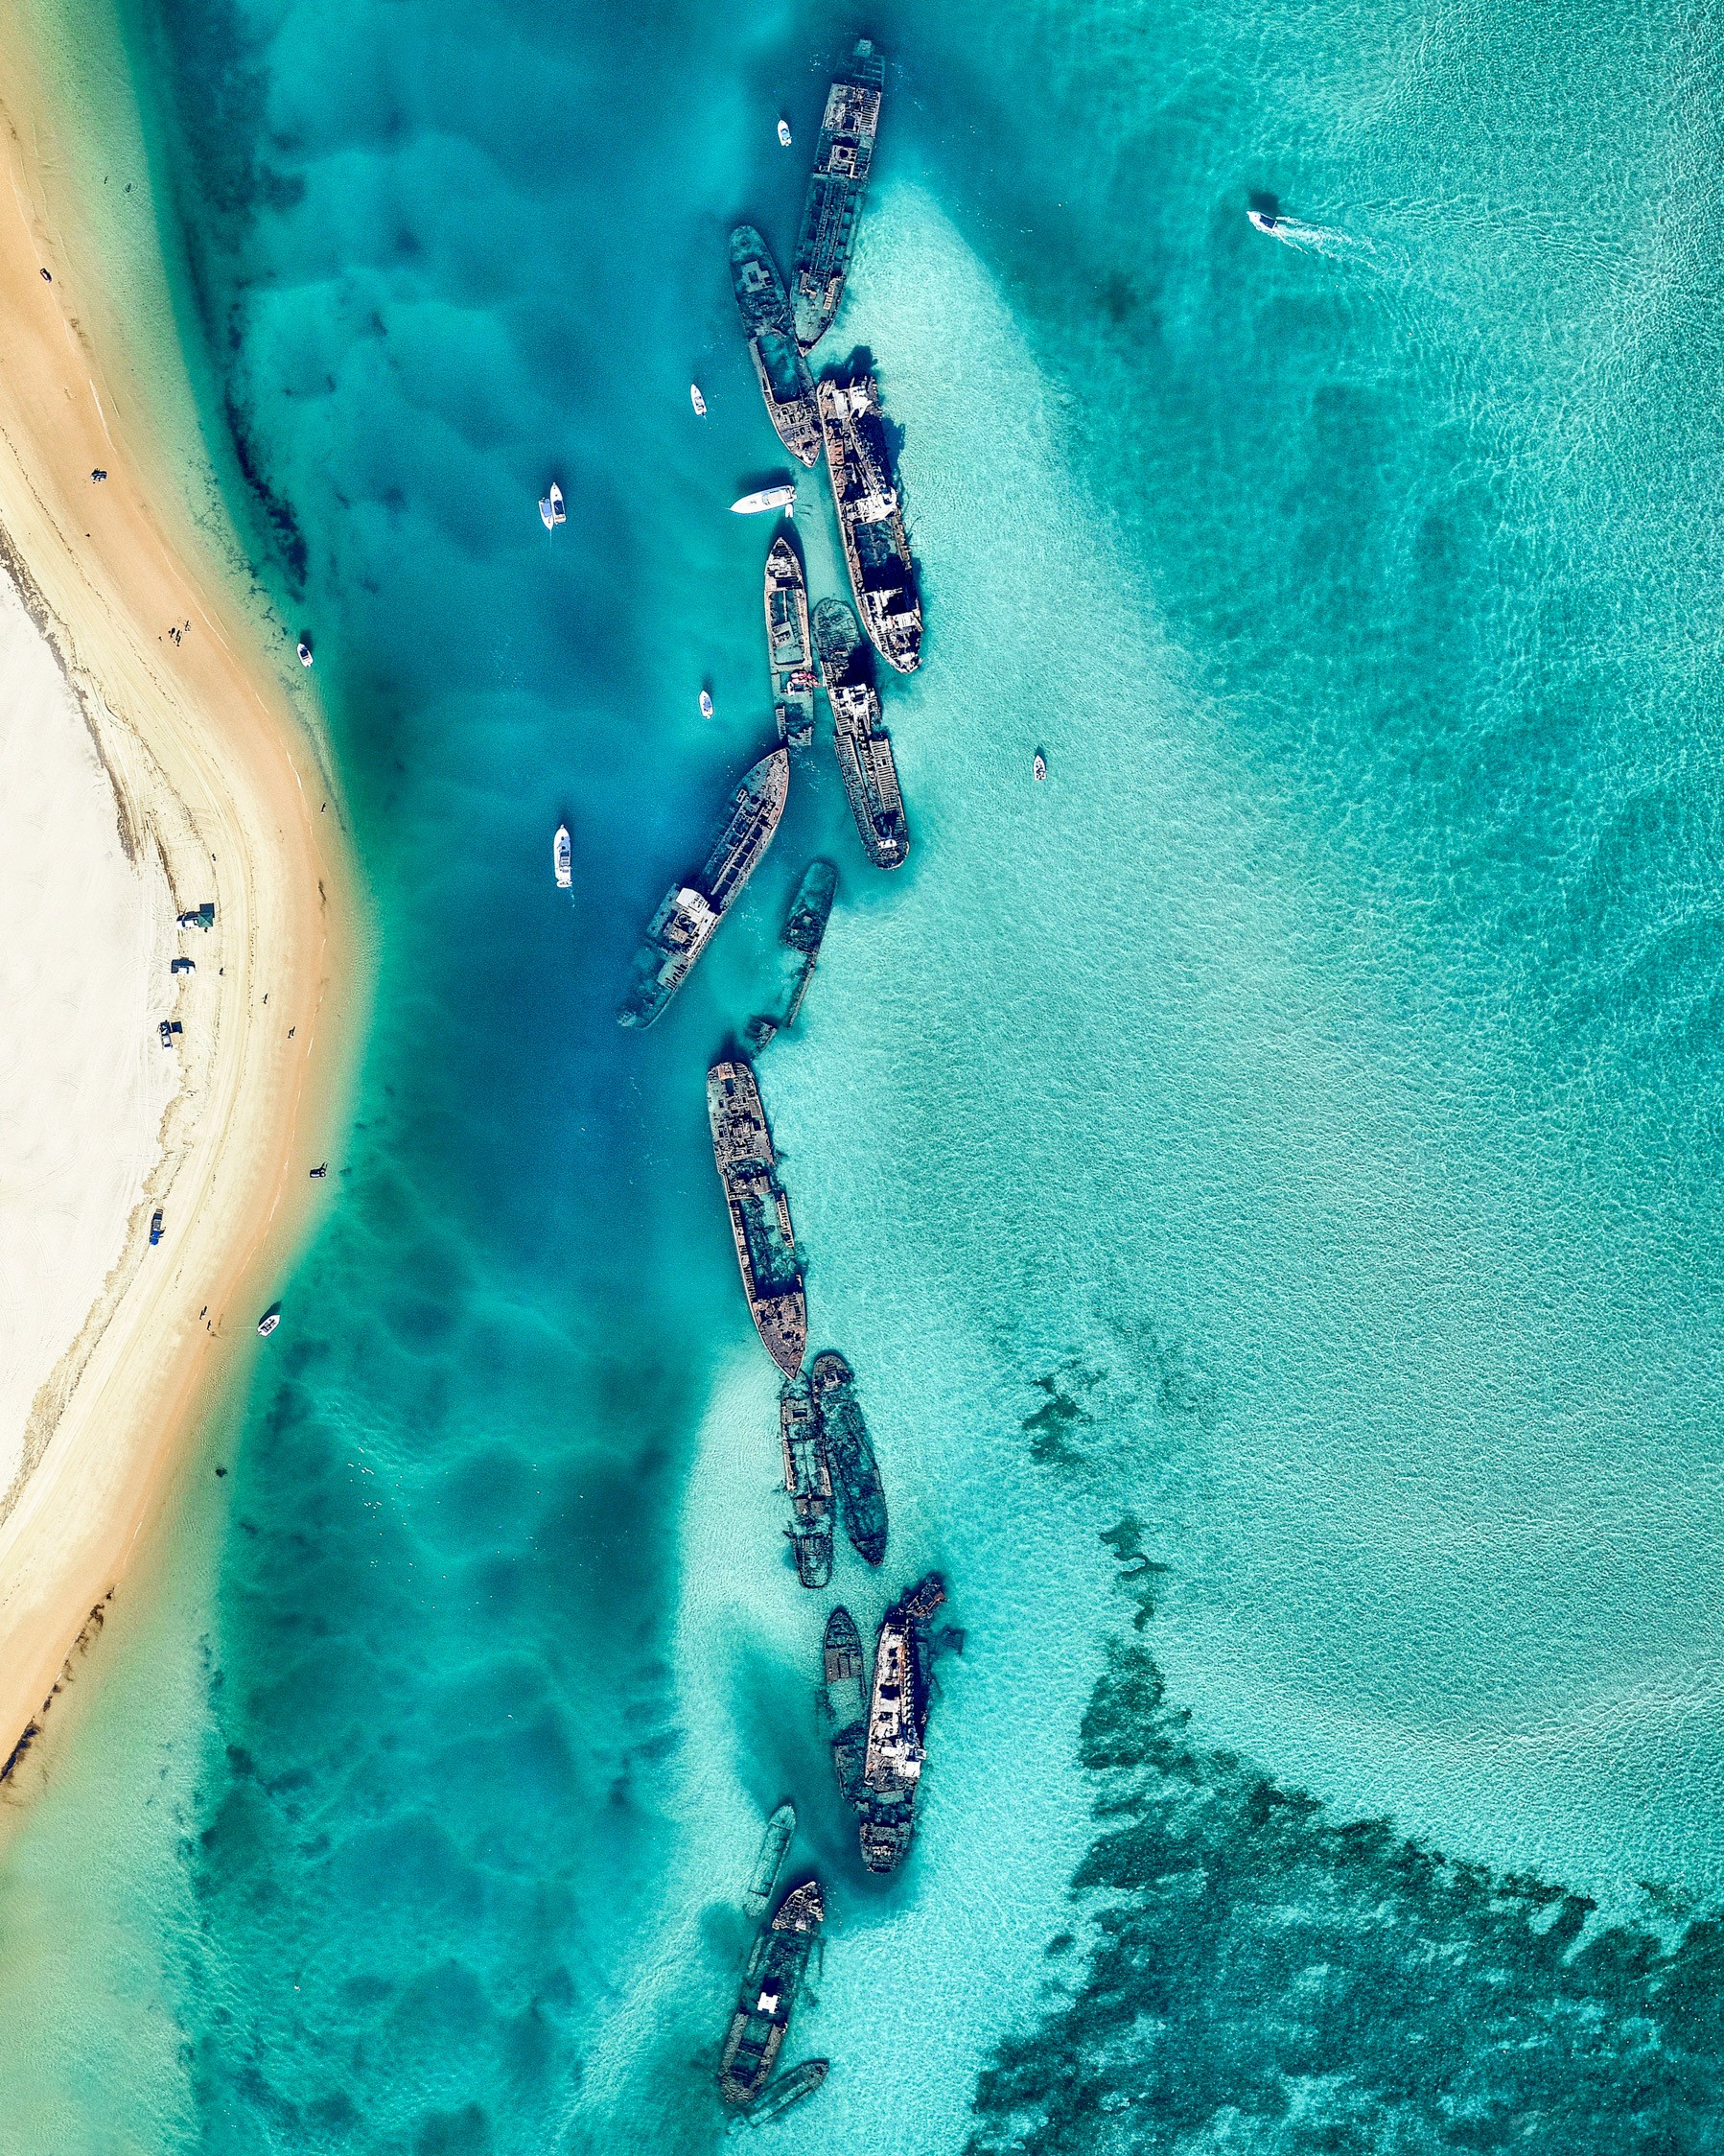 """The Tangalooma Wrecks is a shipwreck site on the western side of Moreton Island in South East Queensland, Australia. It consists of 15 vessels that were deliberately sunk in 1963 to form a breakwall for small boats. In addition to providing safe harbor, the wrecks also created a popular dive and snorkel site, attracting a variety of marine life such as wobbegongs, trevally, kingfish, yellowtail and other tropical fish.  27°09'46.2""""S, 153°22'06.1""""E  Source imagery: Nearmap"""